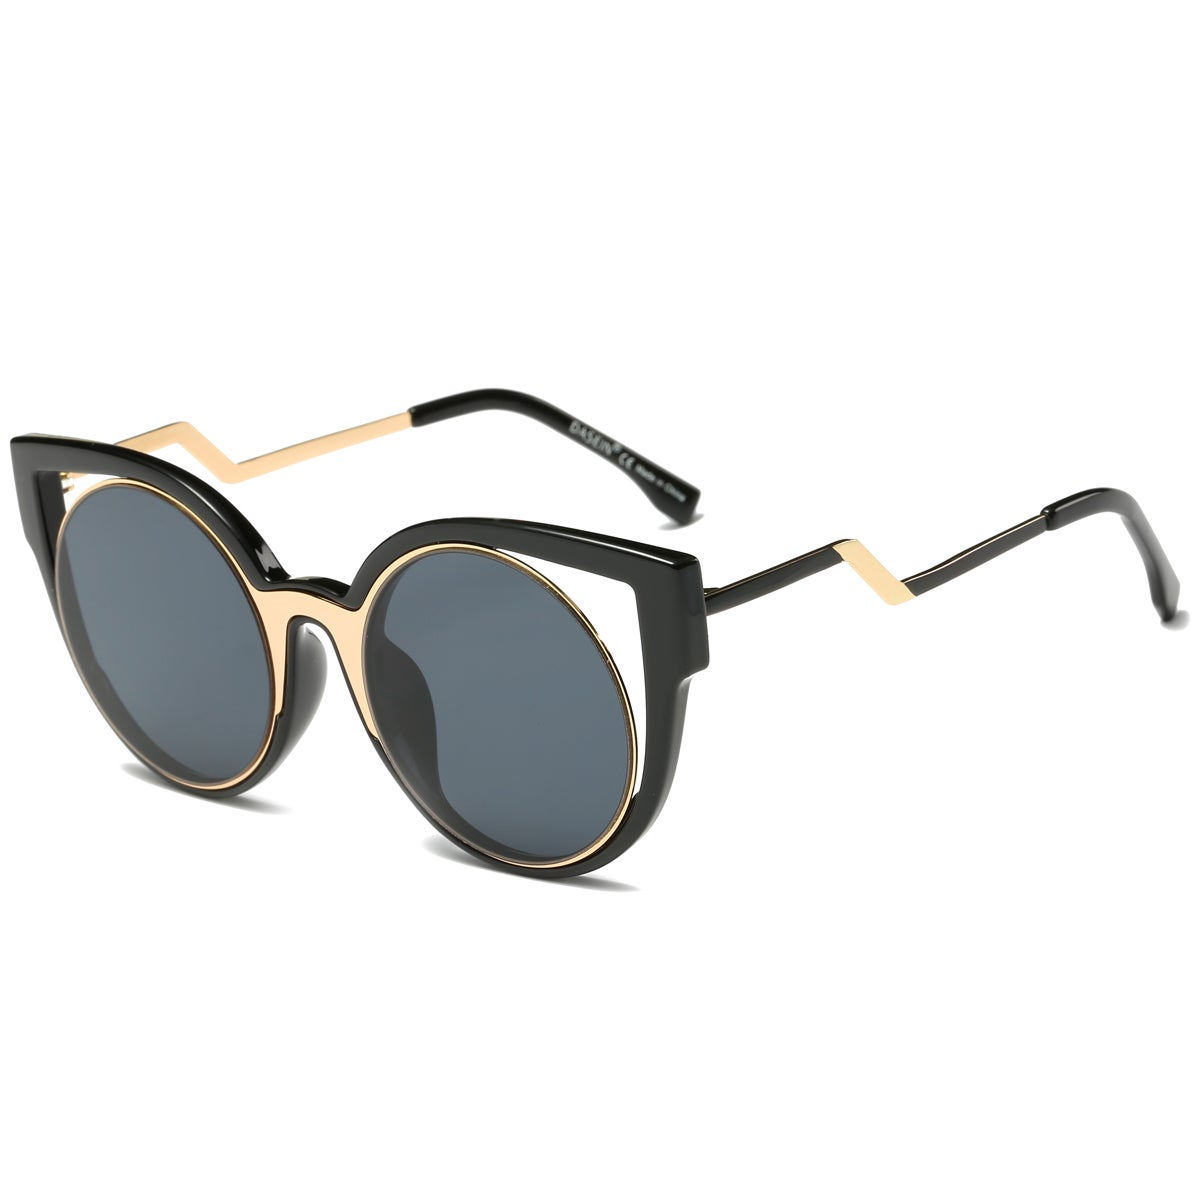 4d61aed3bef Smoke Lens Men s Sunglasses